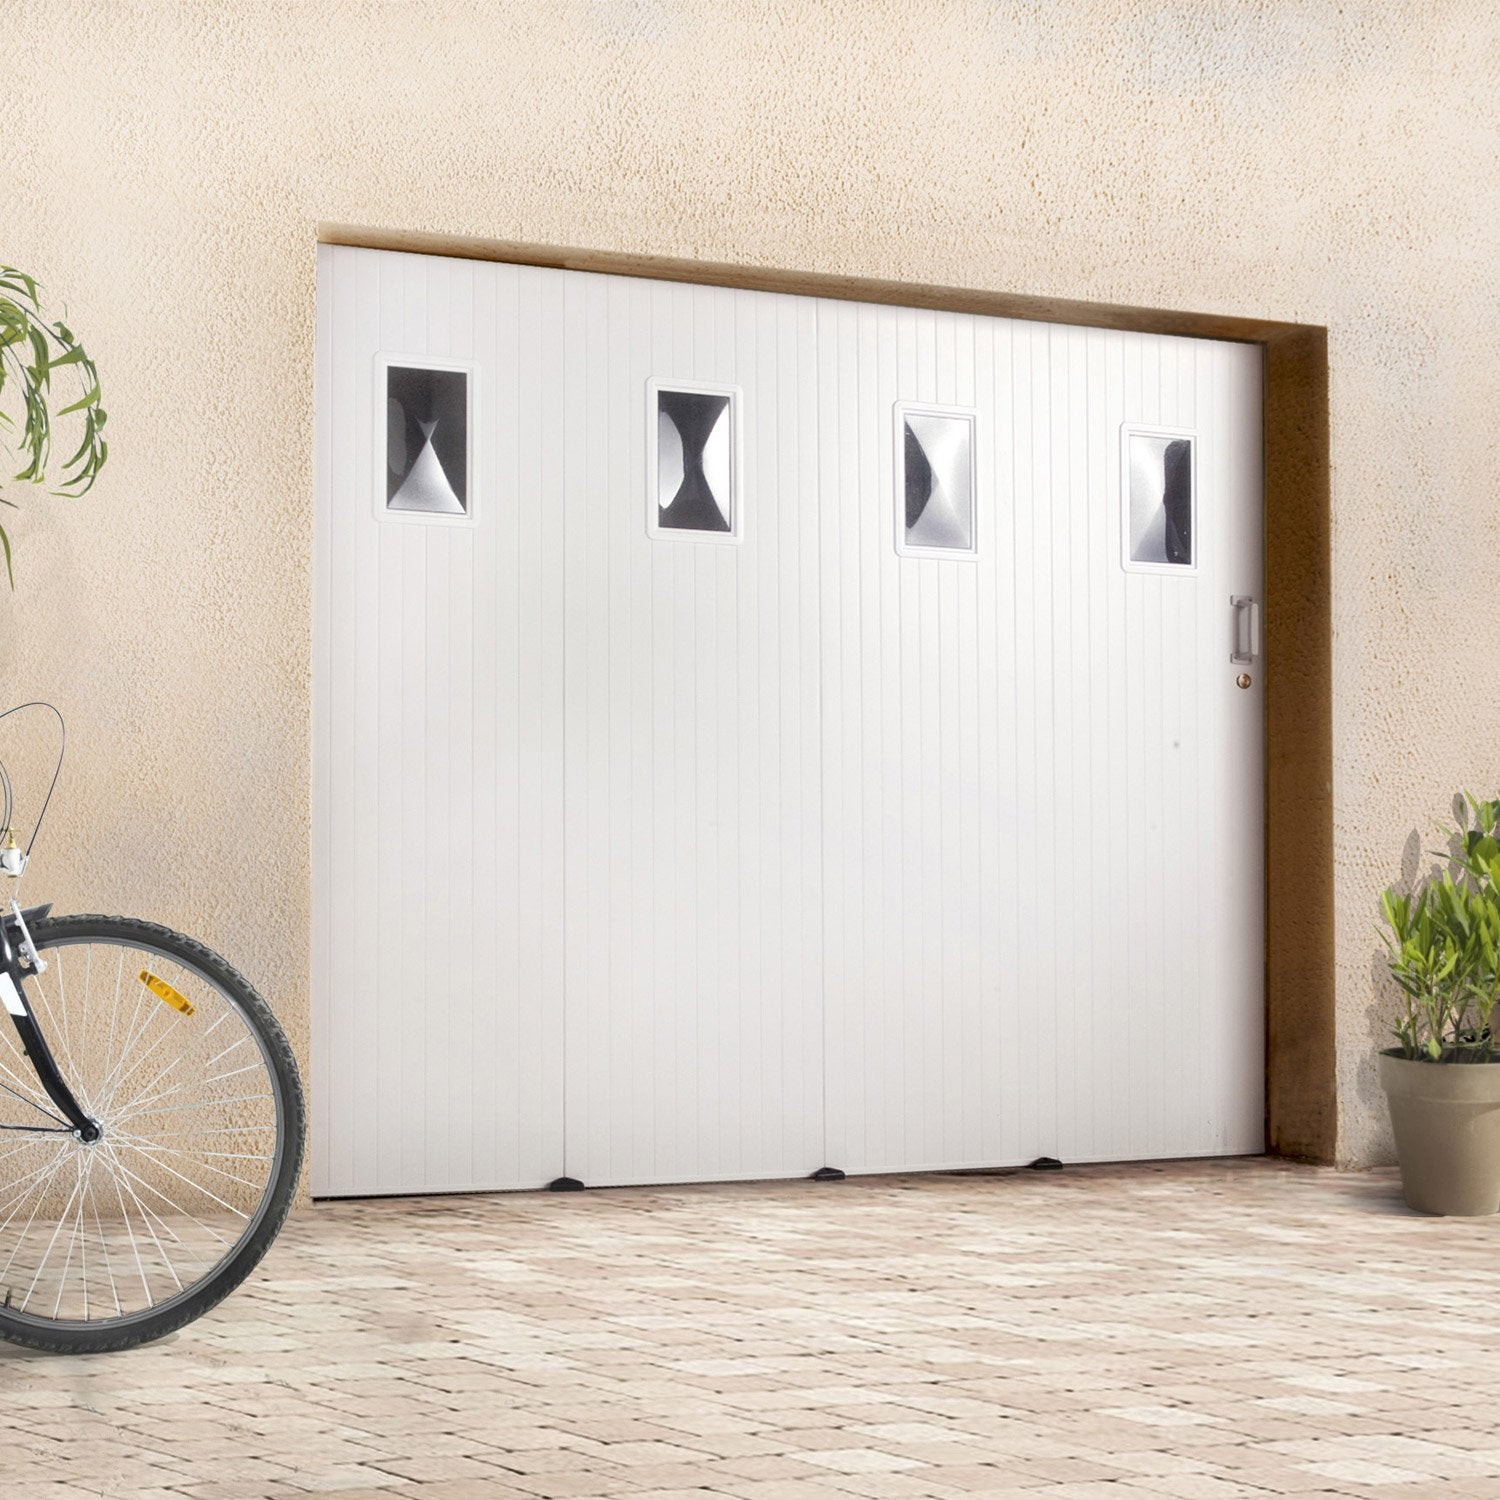 Pose d 39 une porte de garage coulissante leroy merlin - Leroy merlin porte garage sectionnelle ...